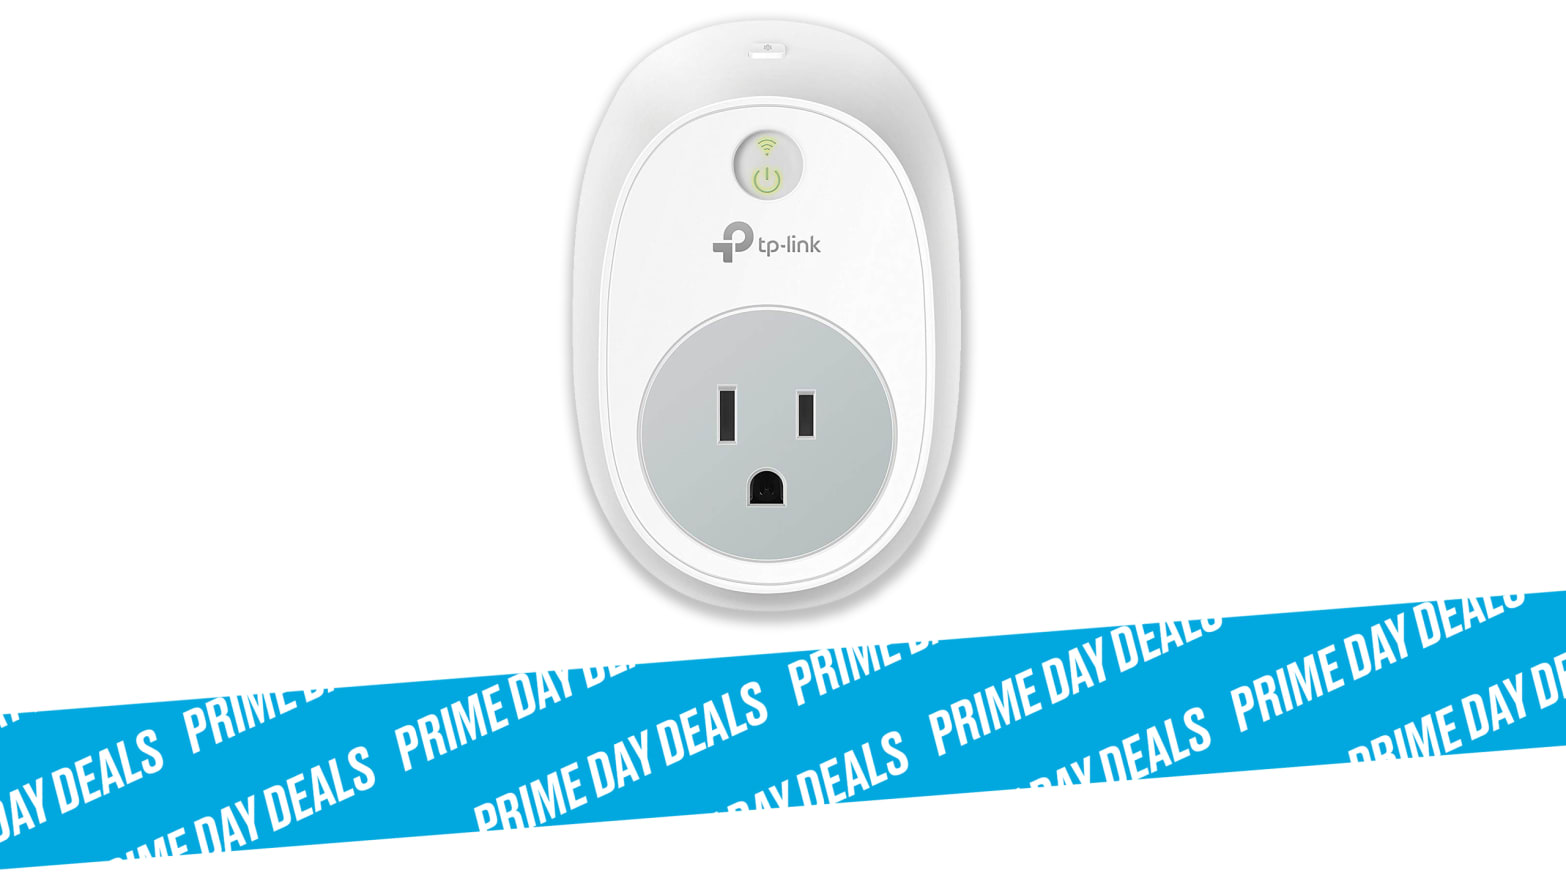 The Kasa Smart WiFi Plug Is Down to $12 for Prime Day